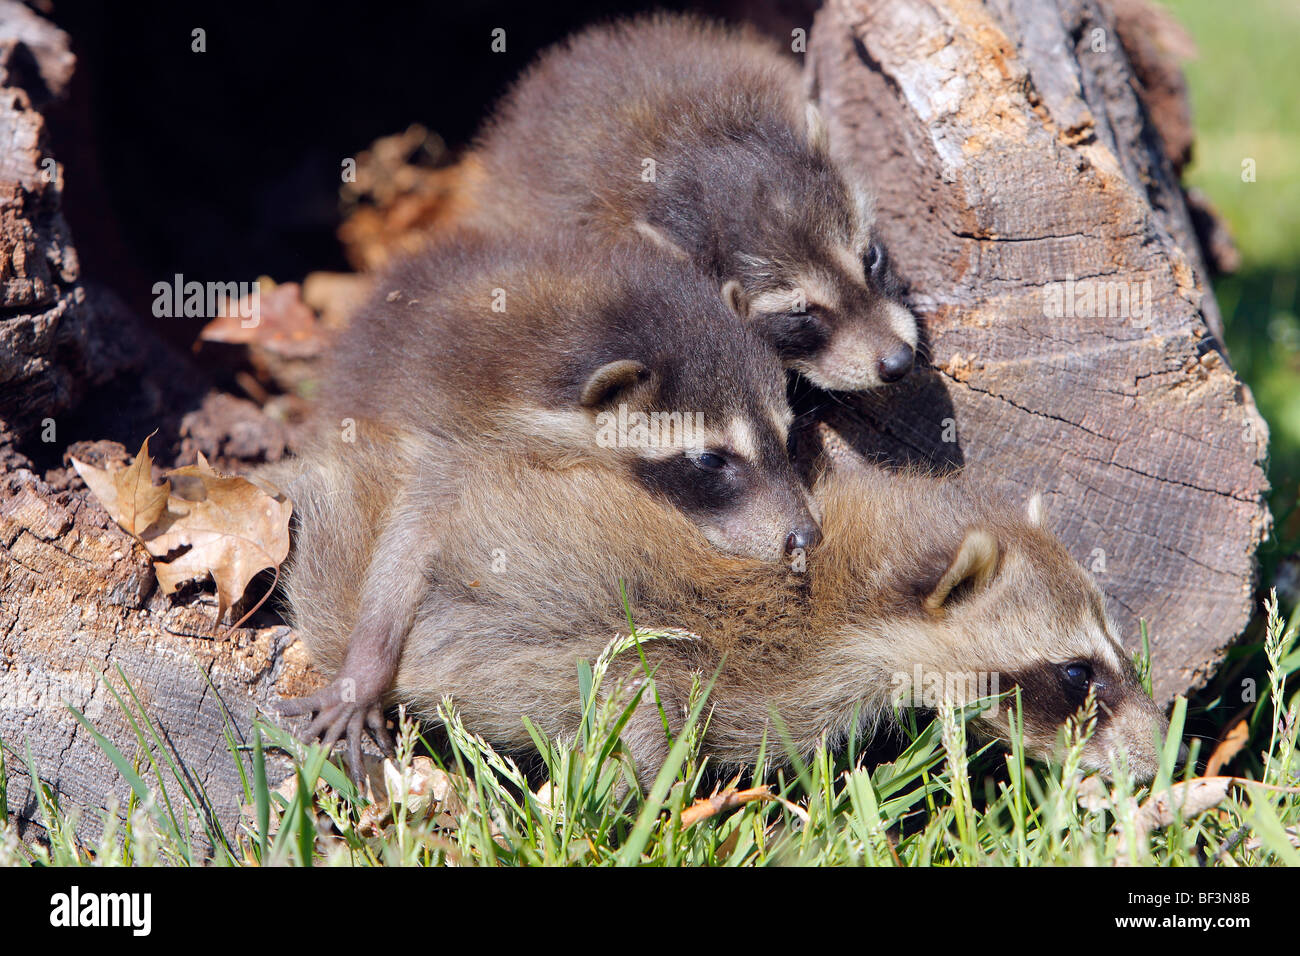 Raccoon (Procyon lotor). Female with two youngsters in a hollow tree. - Stock Image